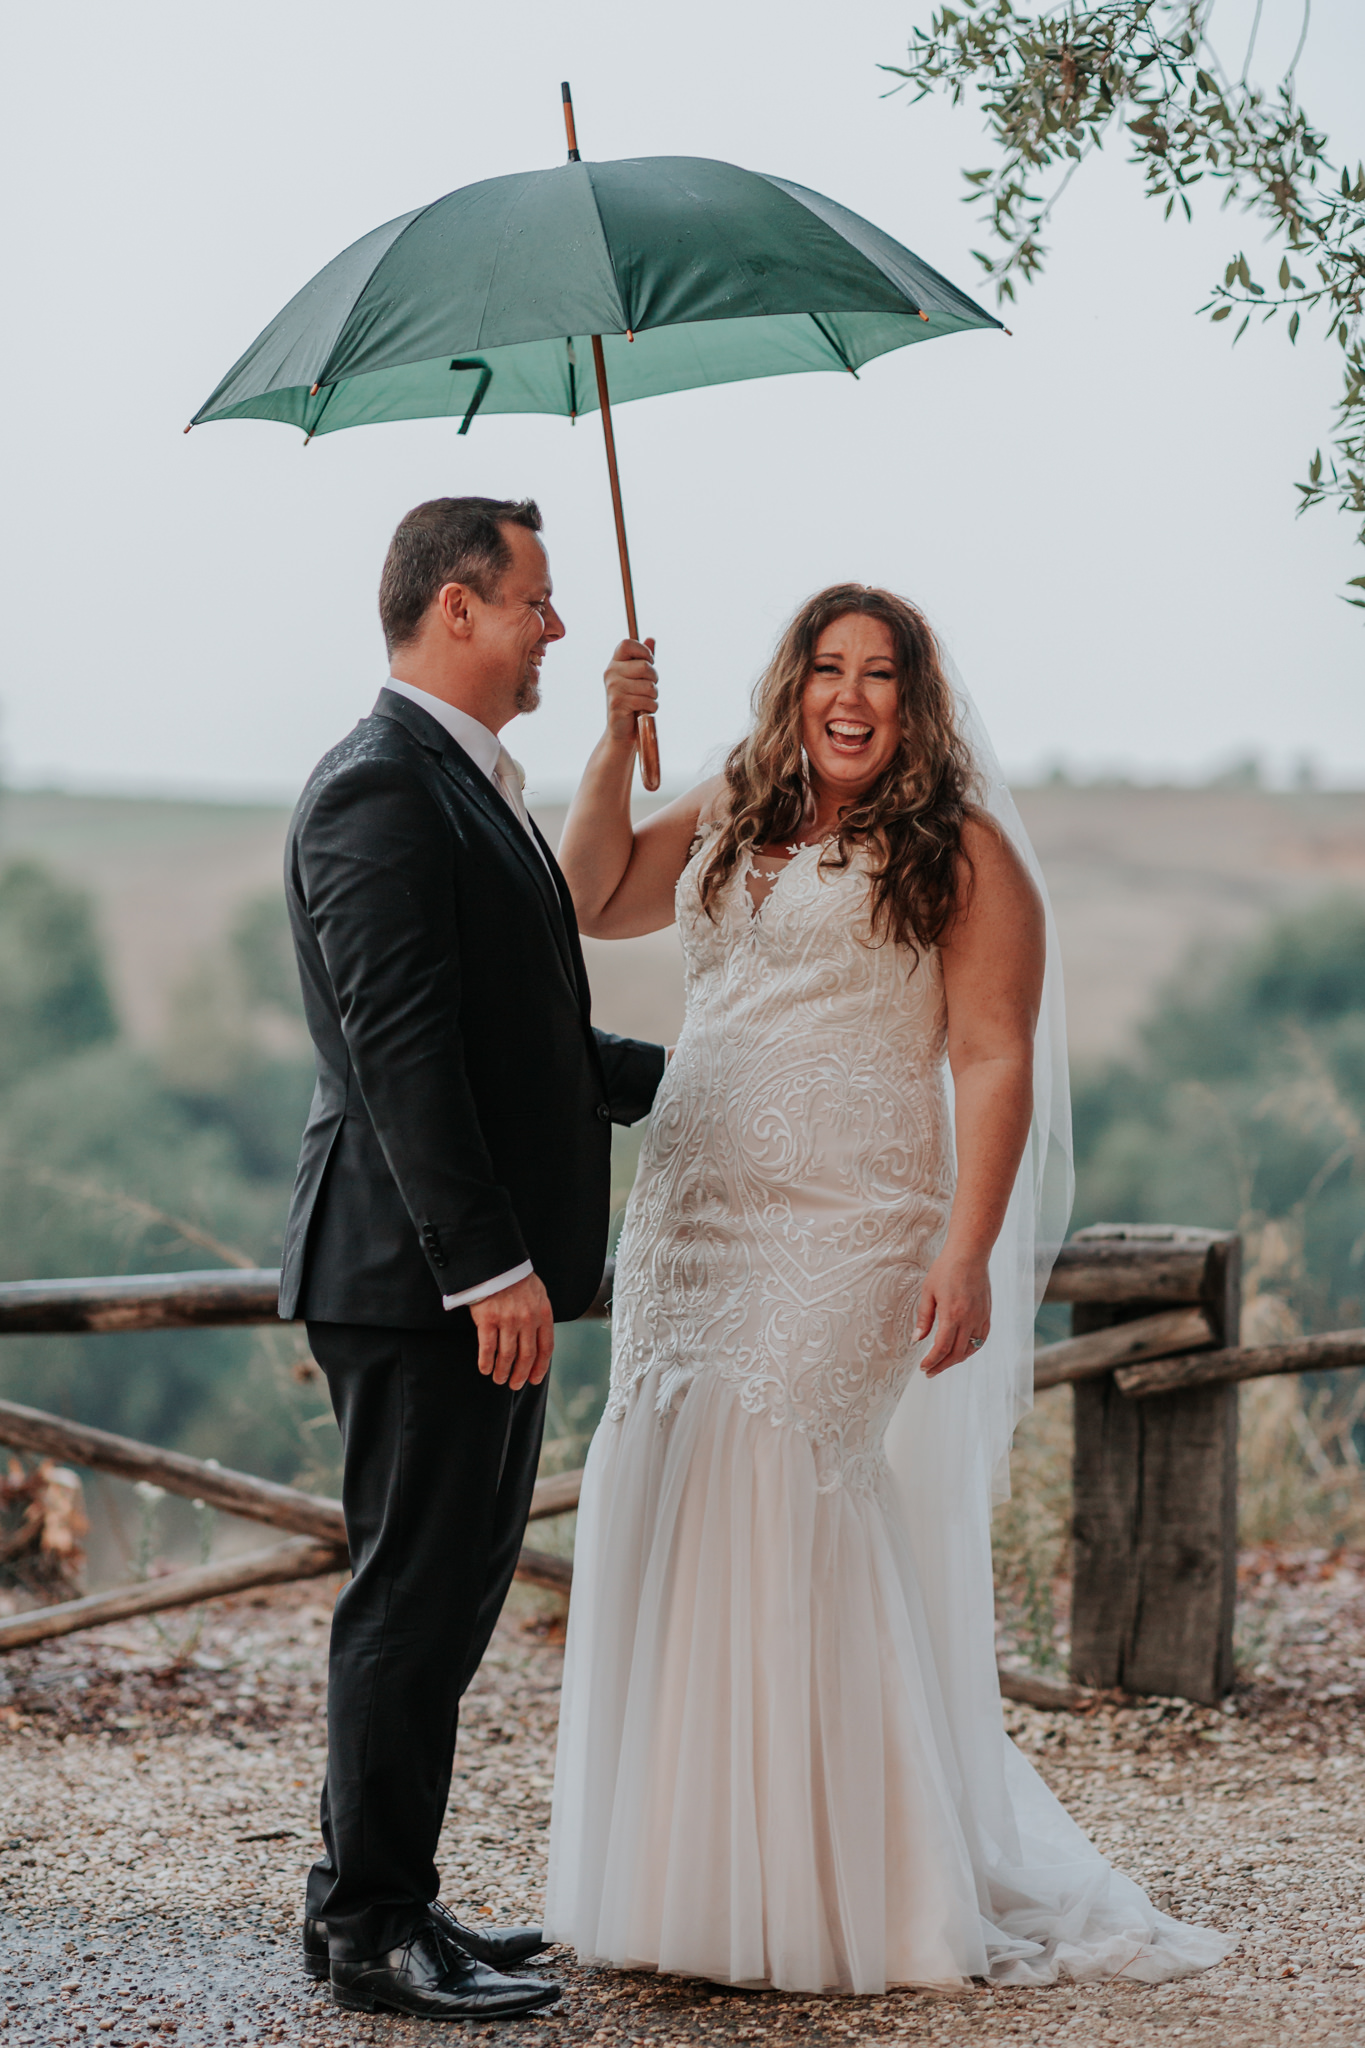 Elkie&Doug_Wedding_Italy_KristieCarrickPhotography_LOW-633.jpg